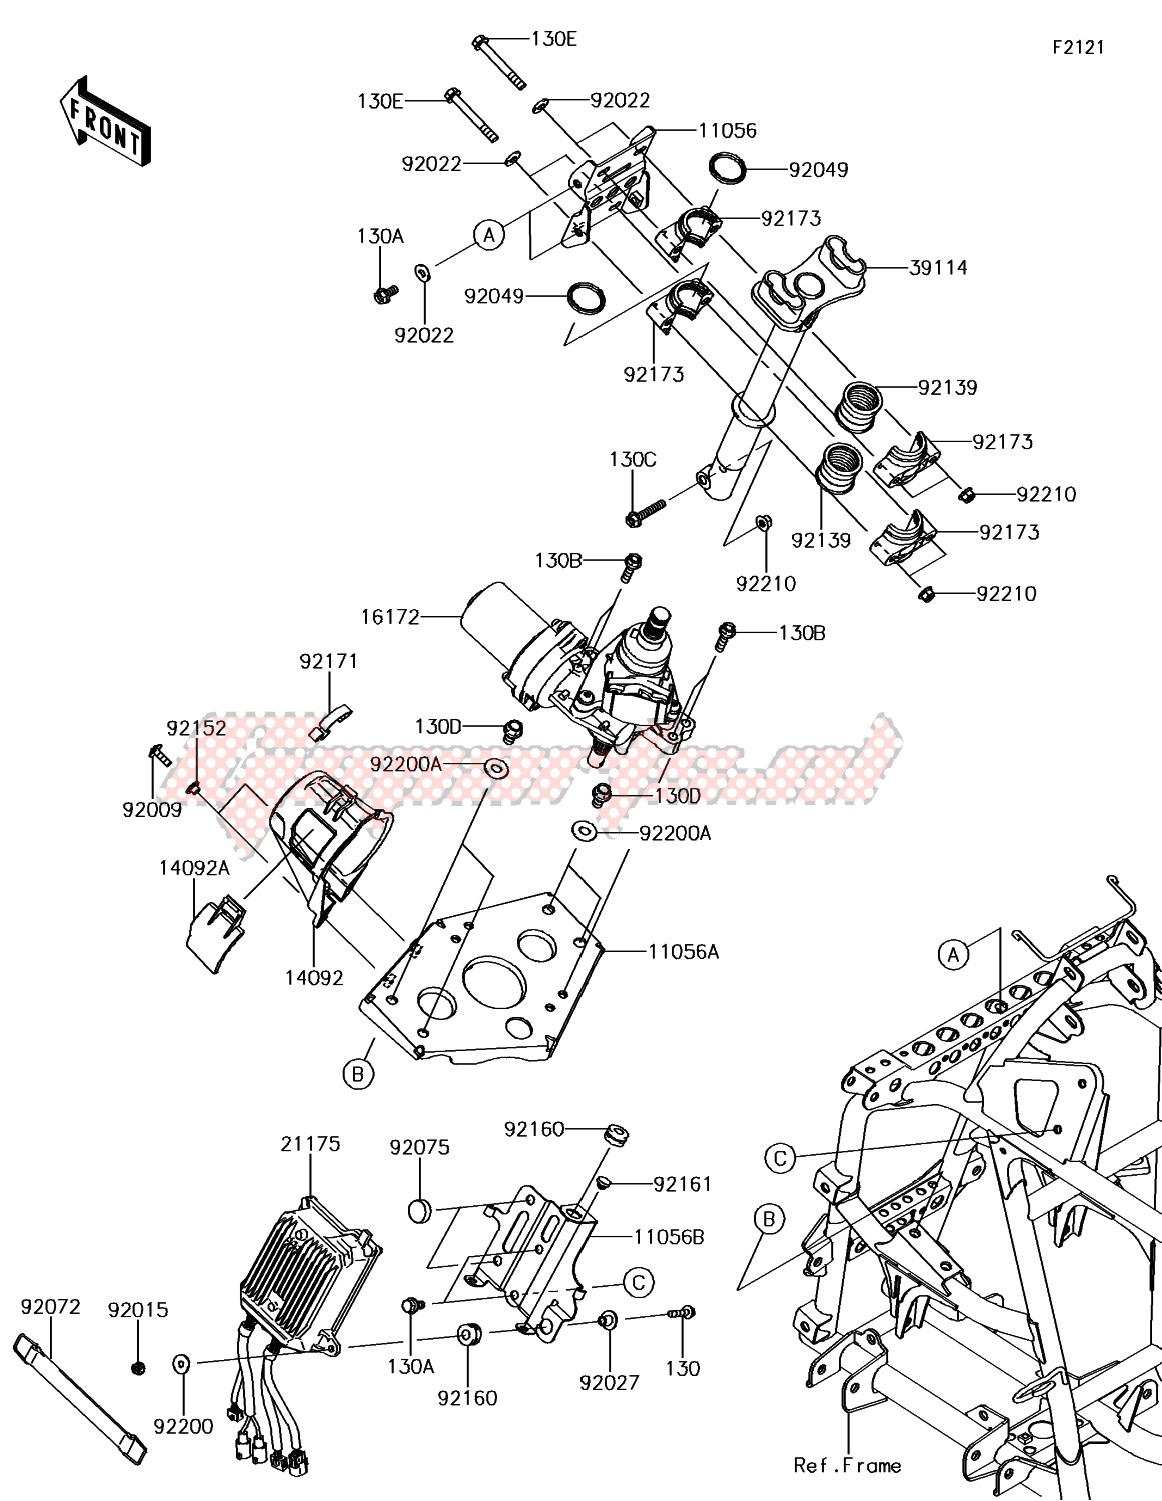 Steering Shaft image